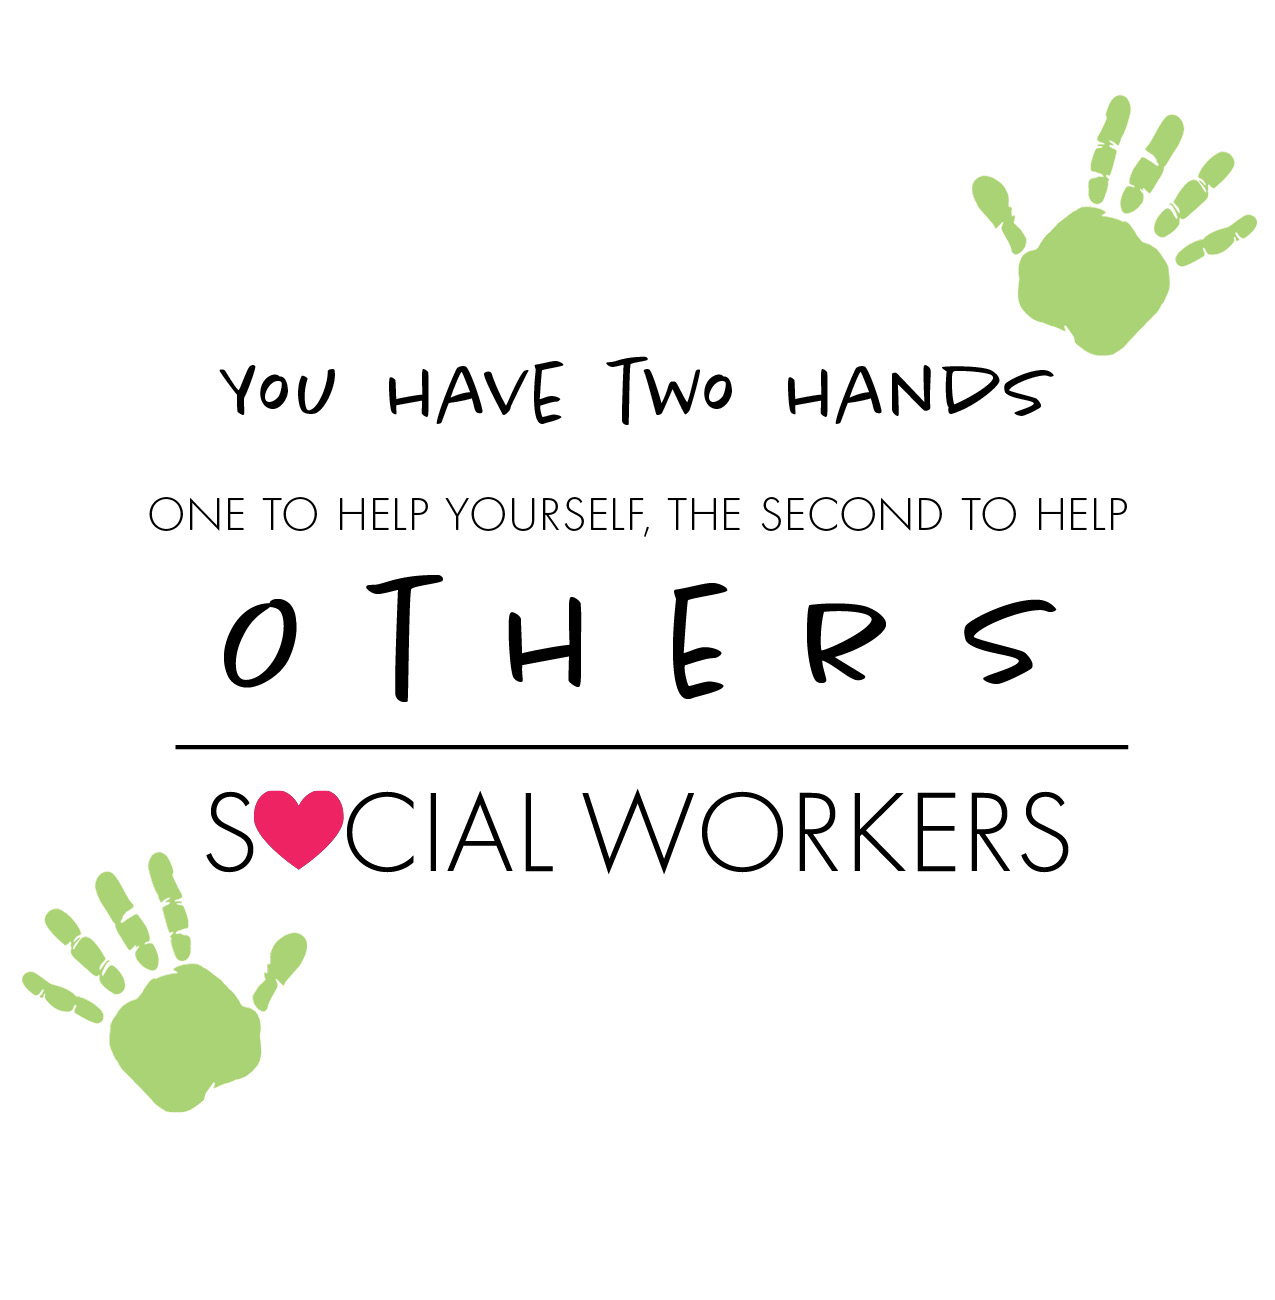 Social Workers Two Hands Shirt